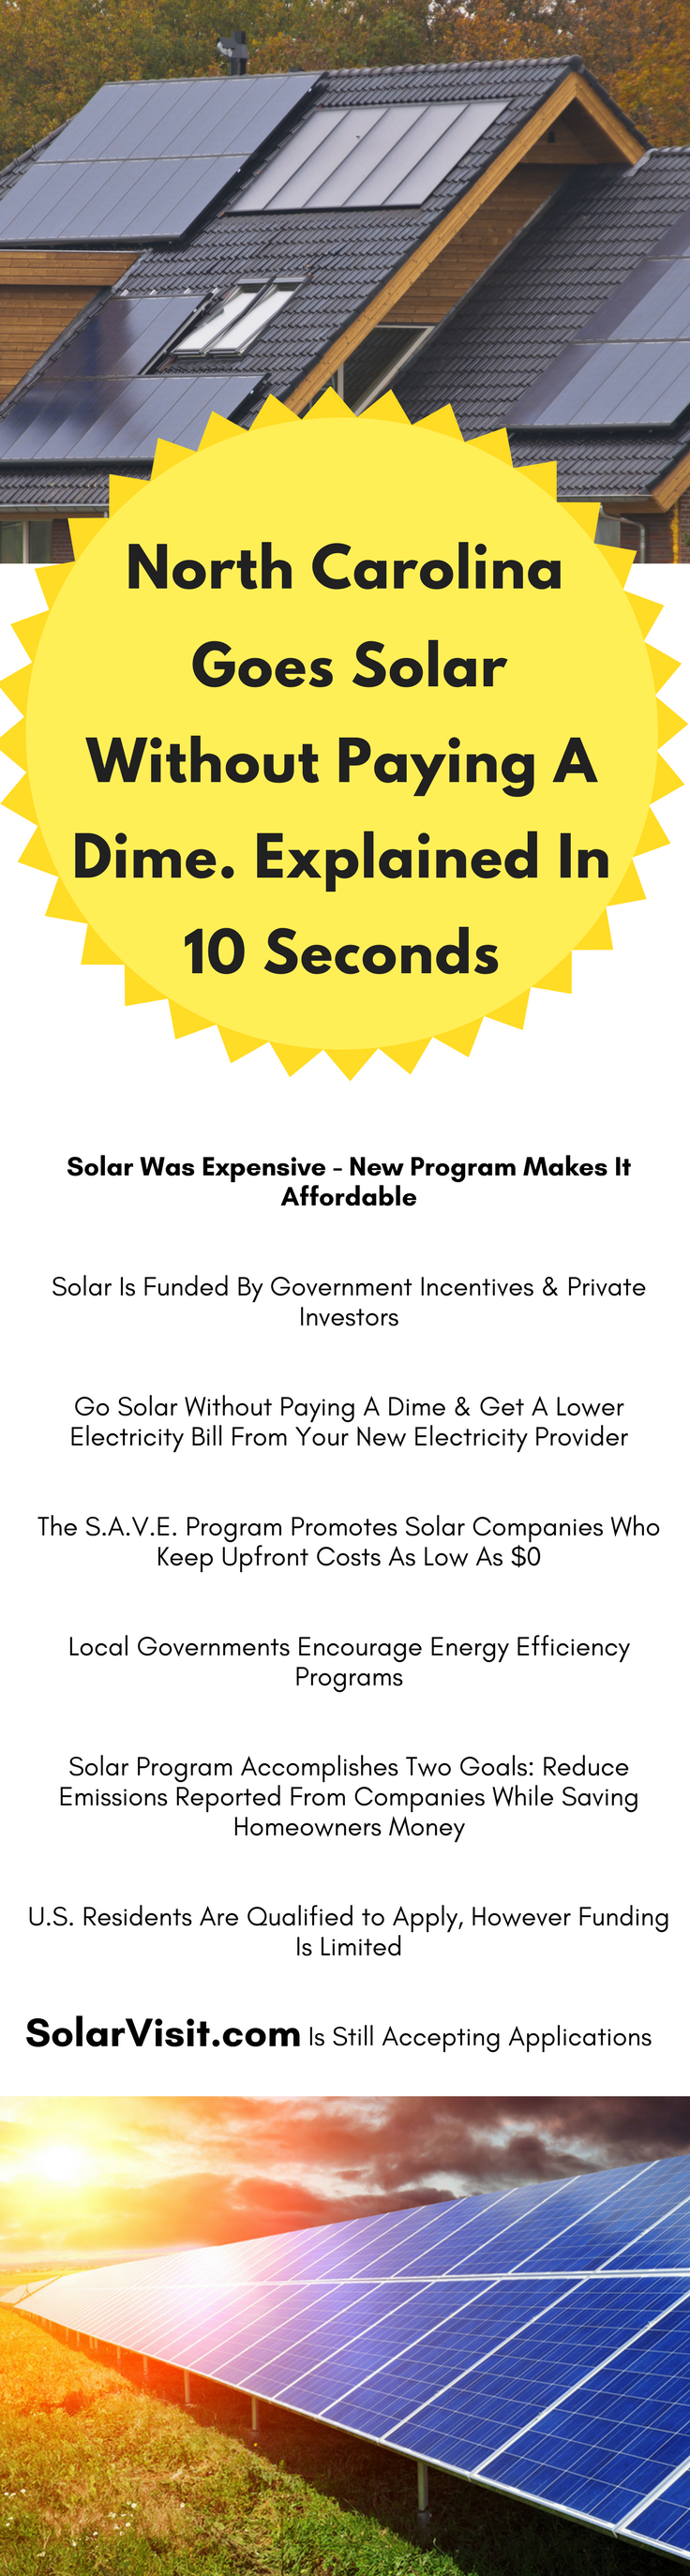 Marvelous Affordable Solar Program Launched In United States For Middle Class  Homeowners